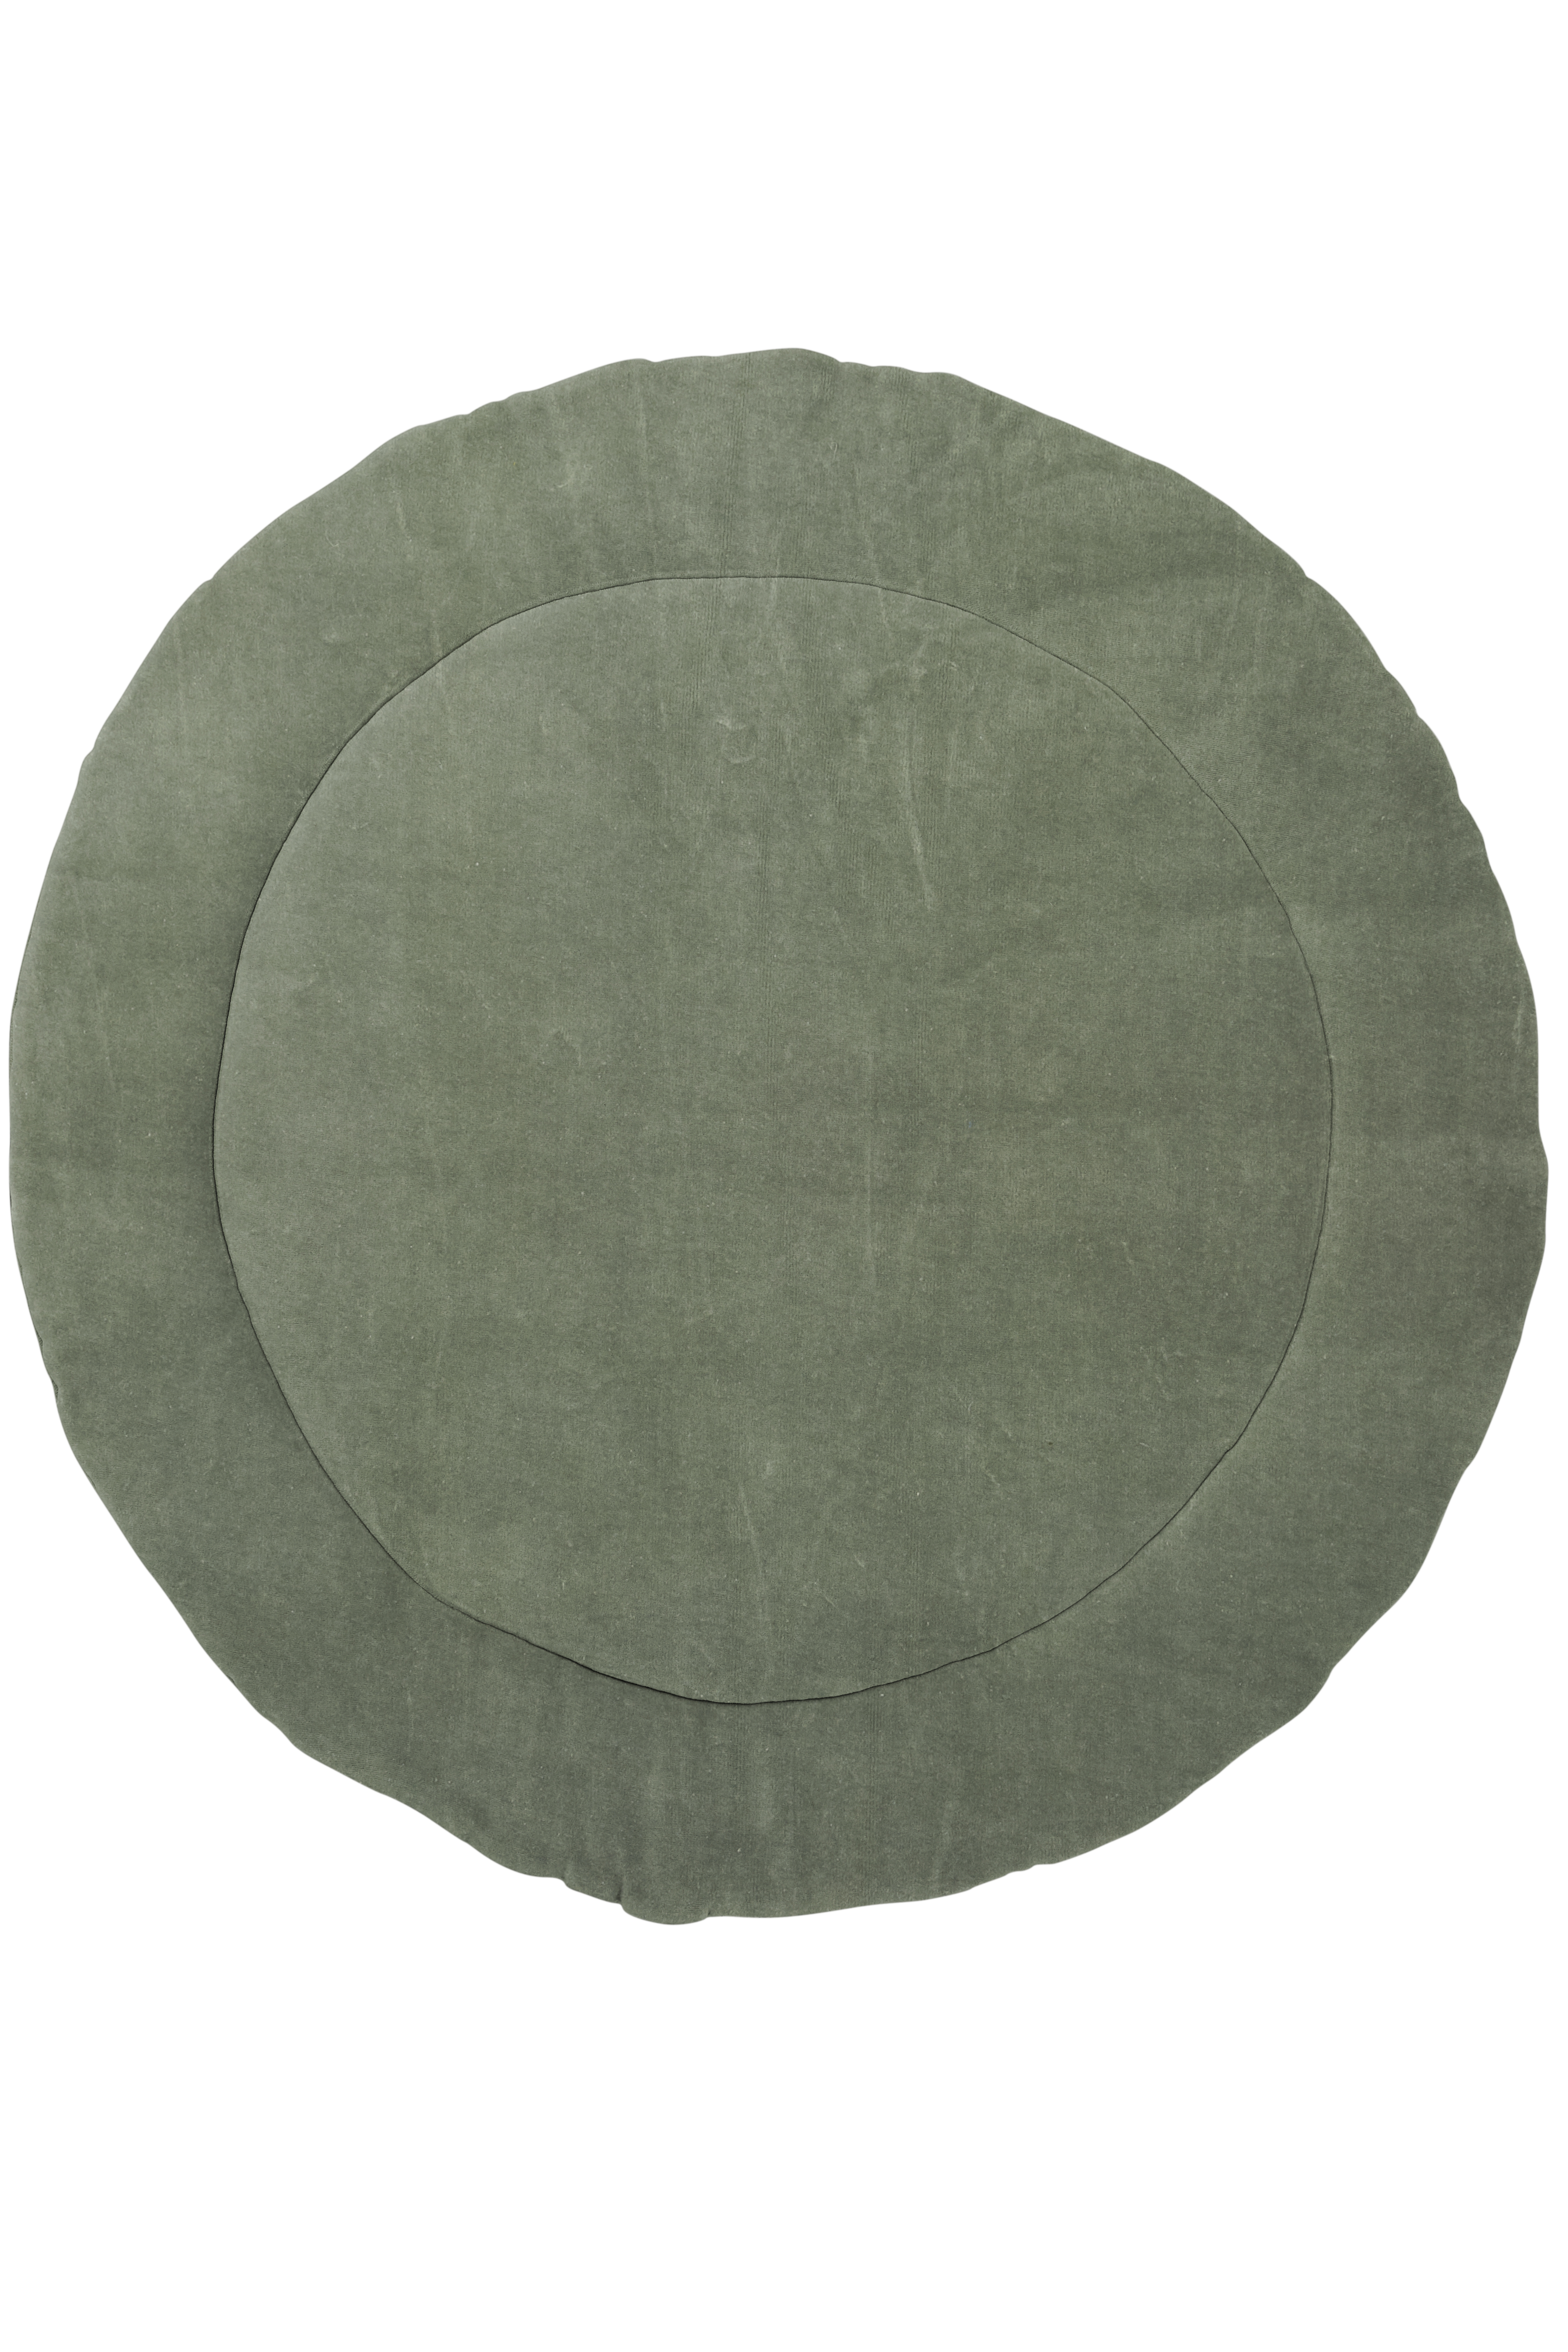 Boxkleed Rond Knit Basic - Forest Green - 95cm